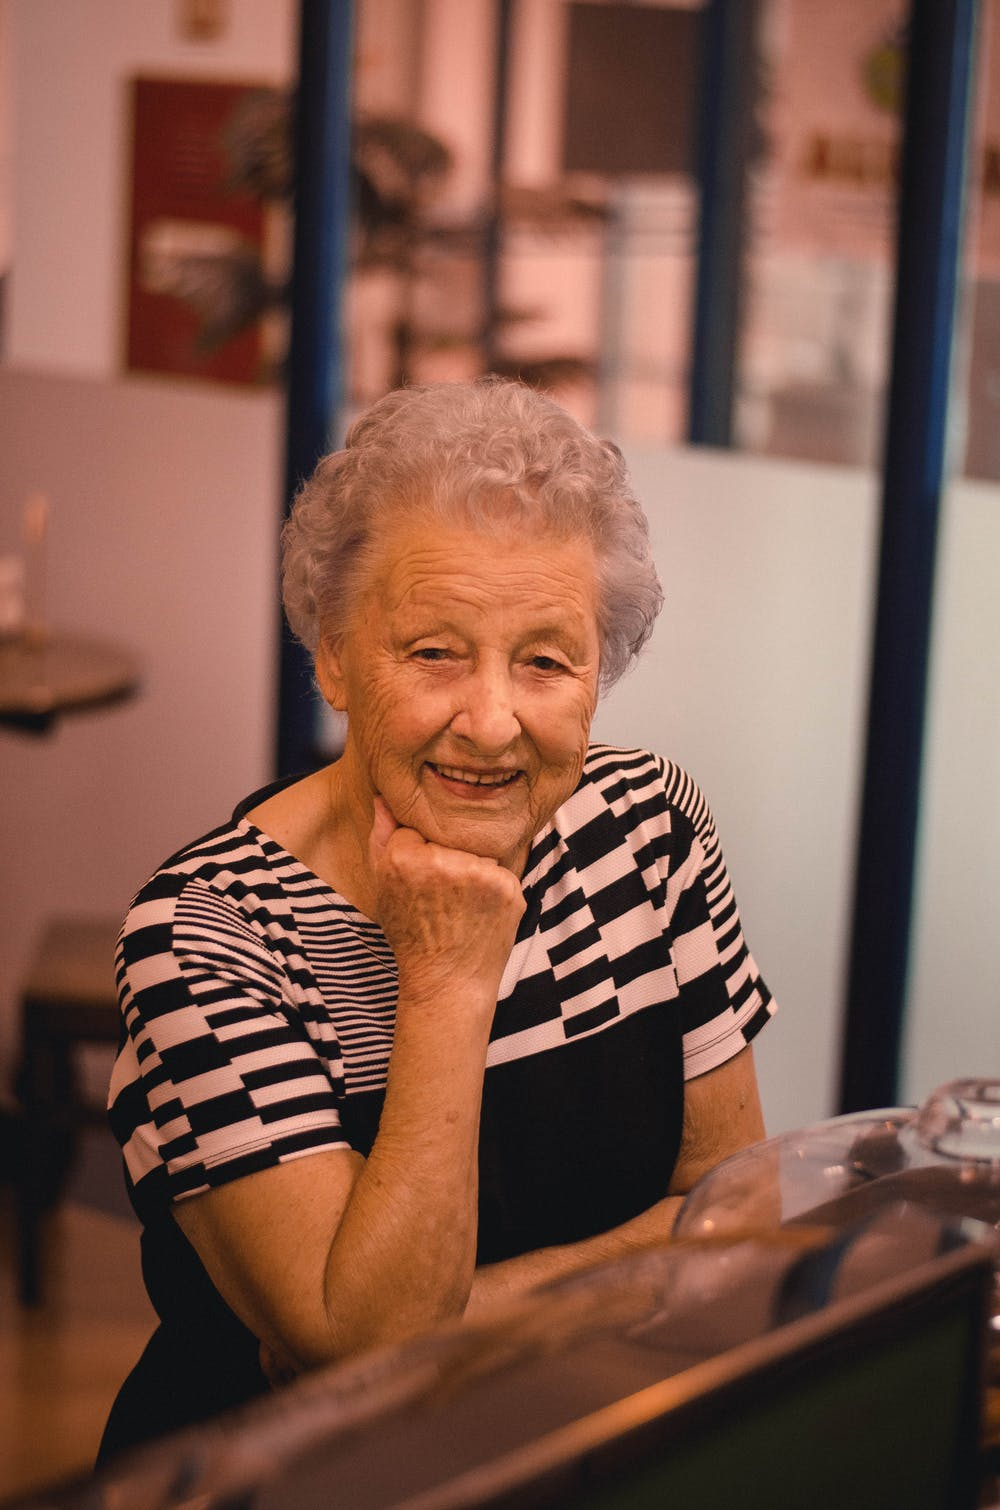 An old woman smiling | Photo: Pexels